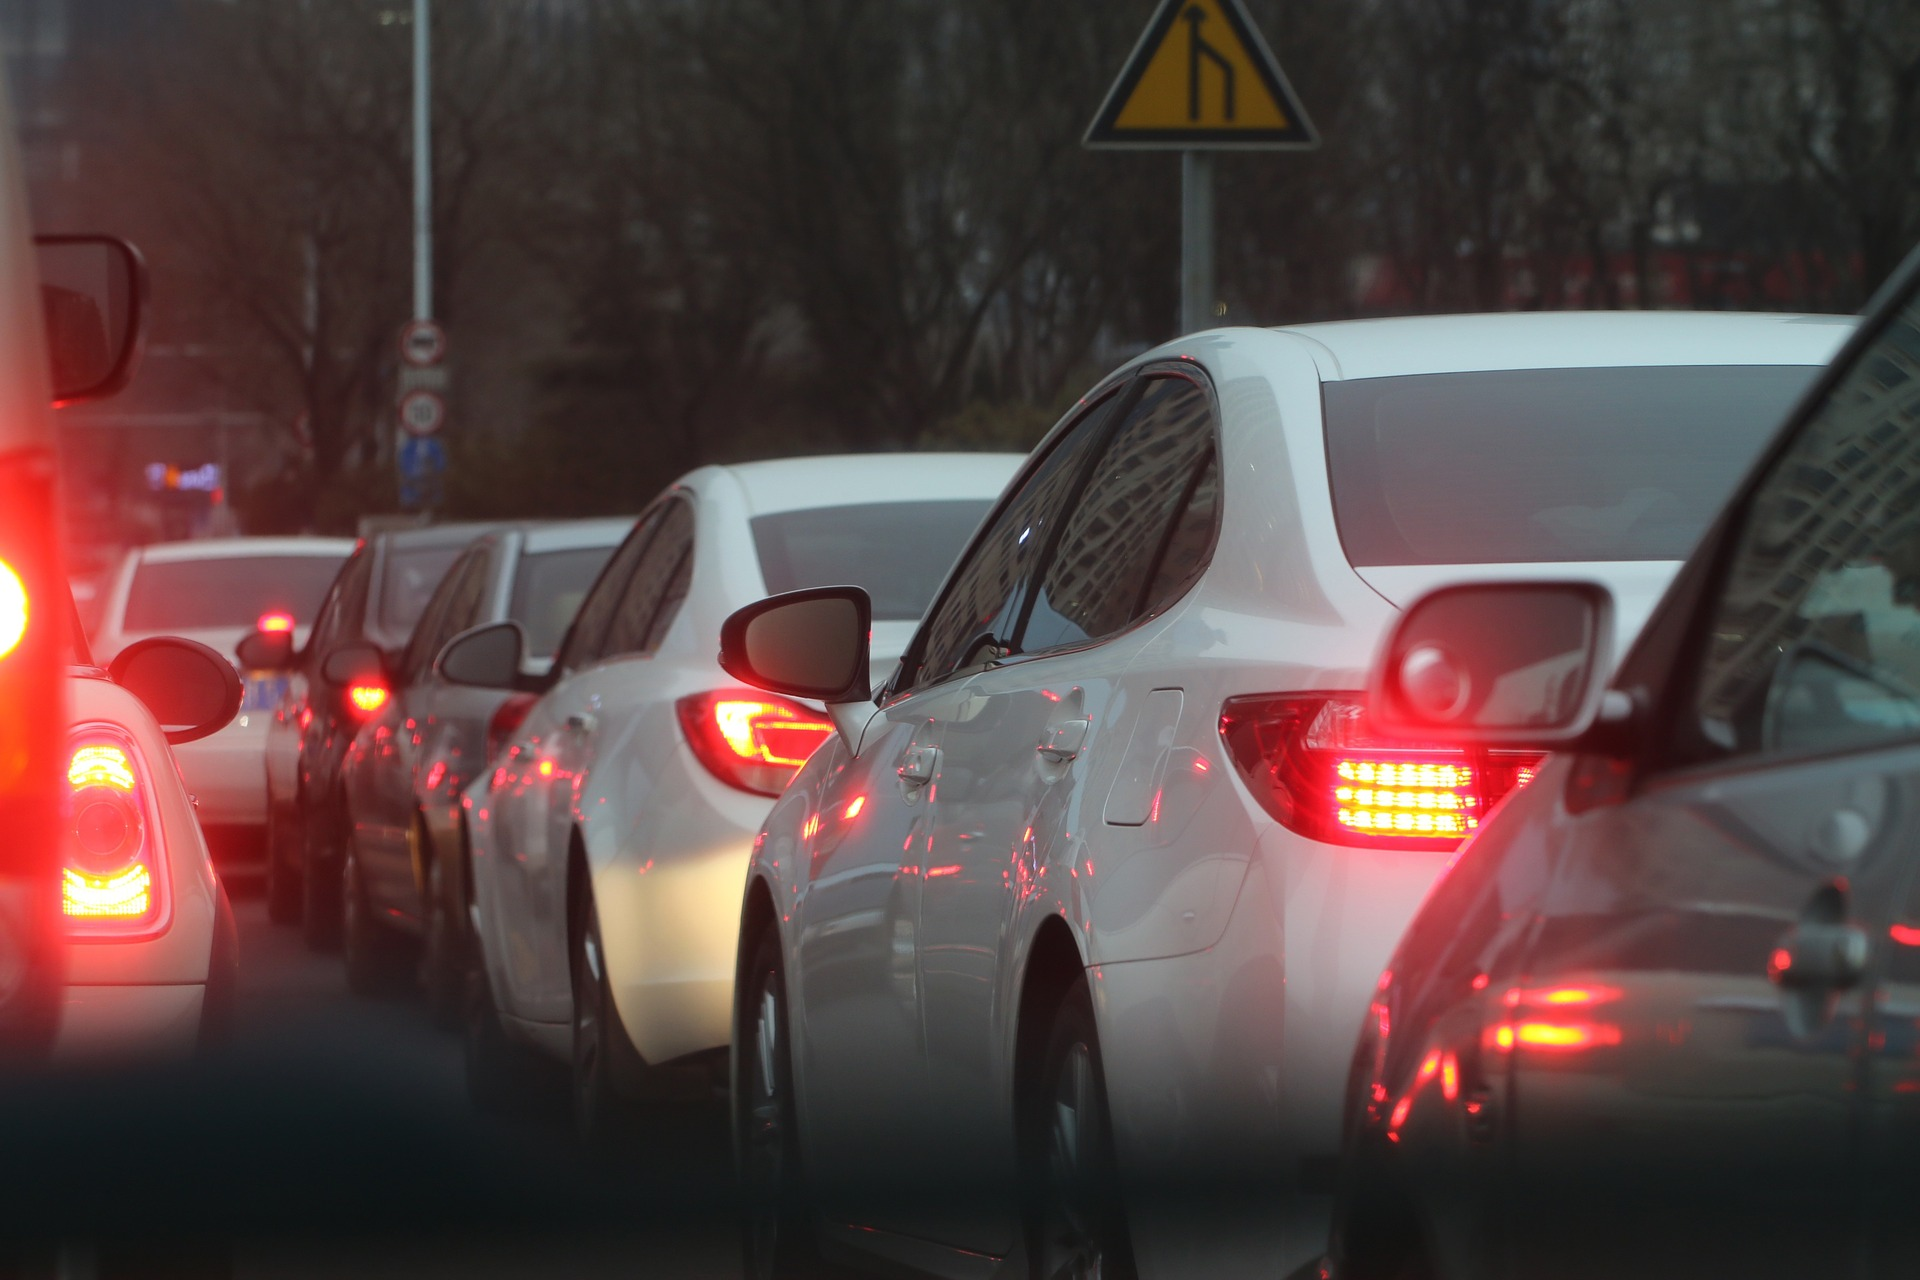 tRAFFIC SLOWING DOWN TO YOUR WEBSITE BECAUSE OF BAD OR LACKING DATA